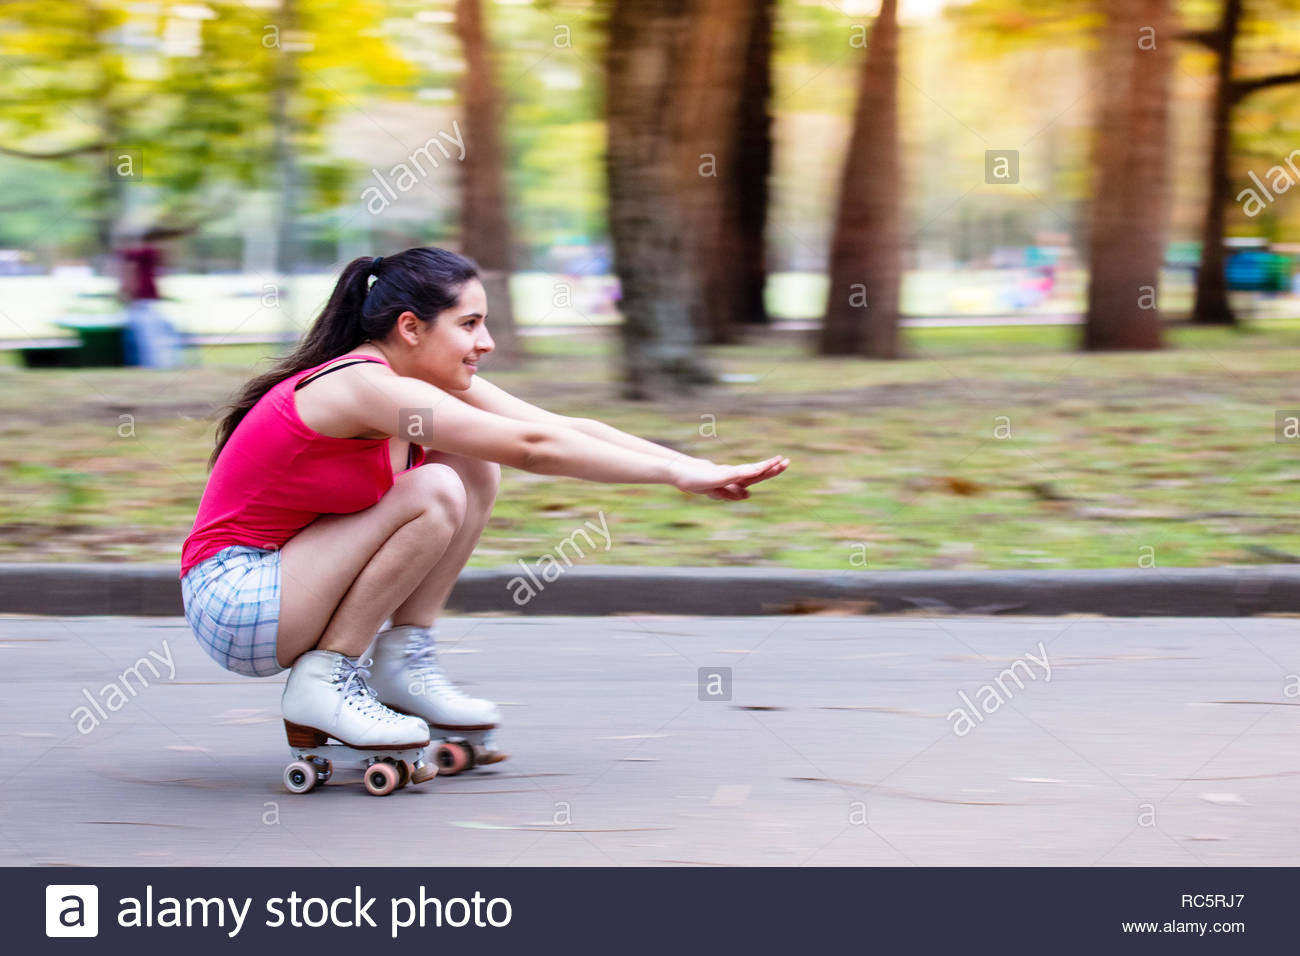 Brazil, Sao Paulo, Ibirapuera Park. A teenaged Brazilian girl in shorts and a pink sleeveless top roller skating in Ibirapuera Park - Stock Image